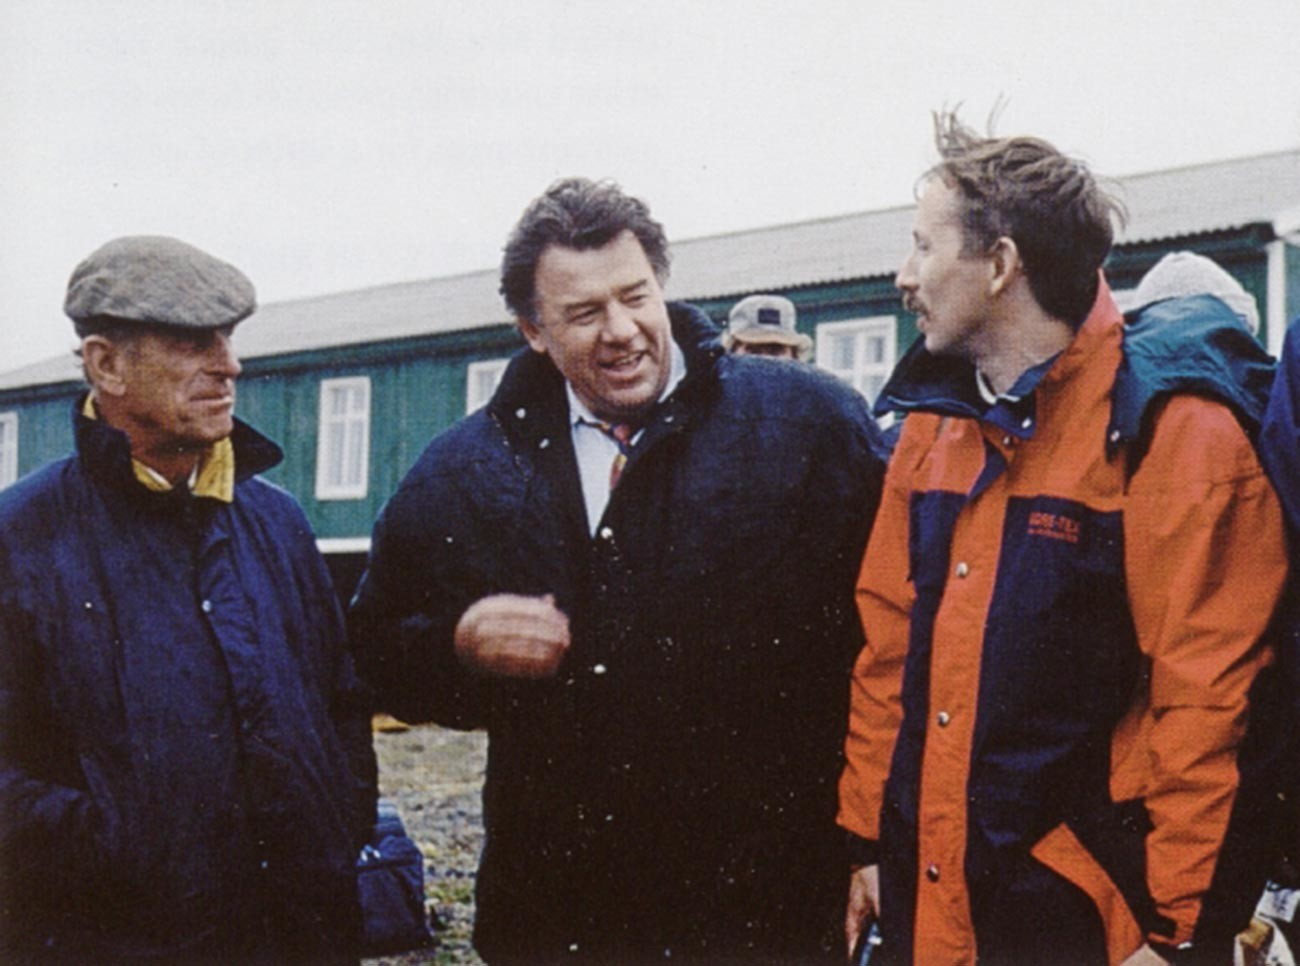 Prince Philip (on the left) and Victor Nikiforov (on the right). Nikiforov currently works as the Conservation Director at the Tigrus Conservation Fund.